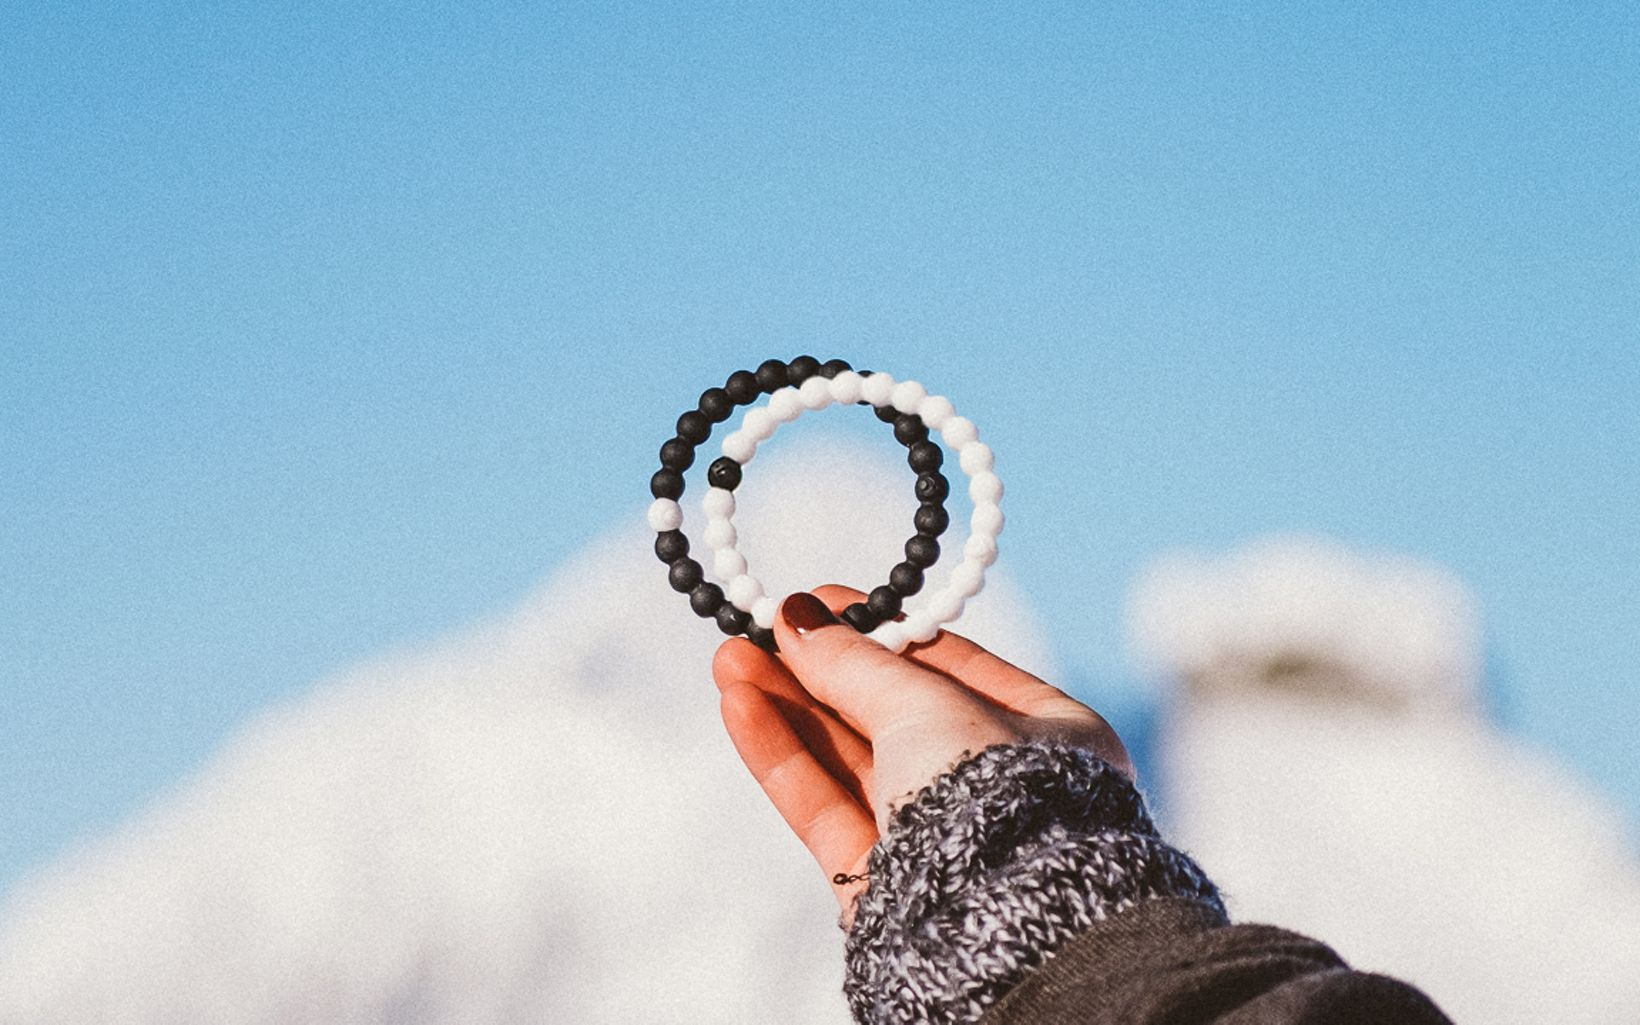 Lokai Black & White Bracelets to help The Nature Conservancy.